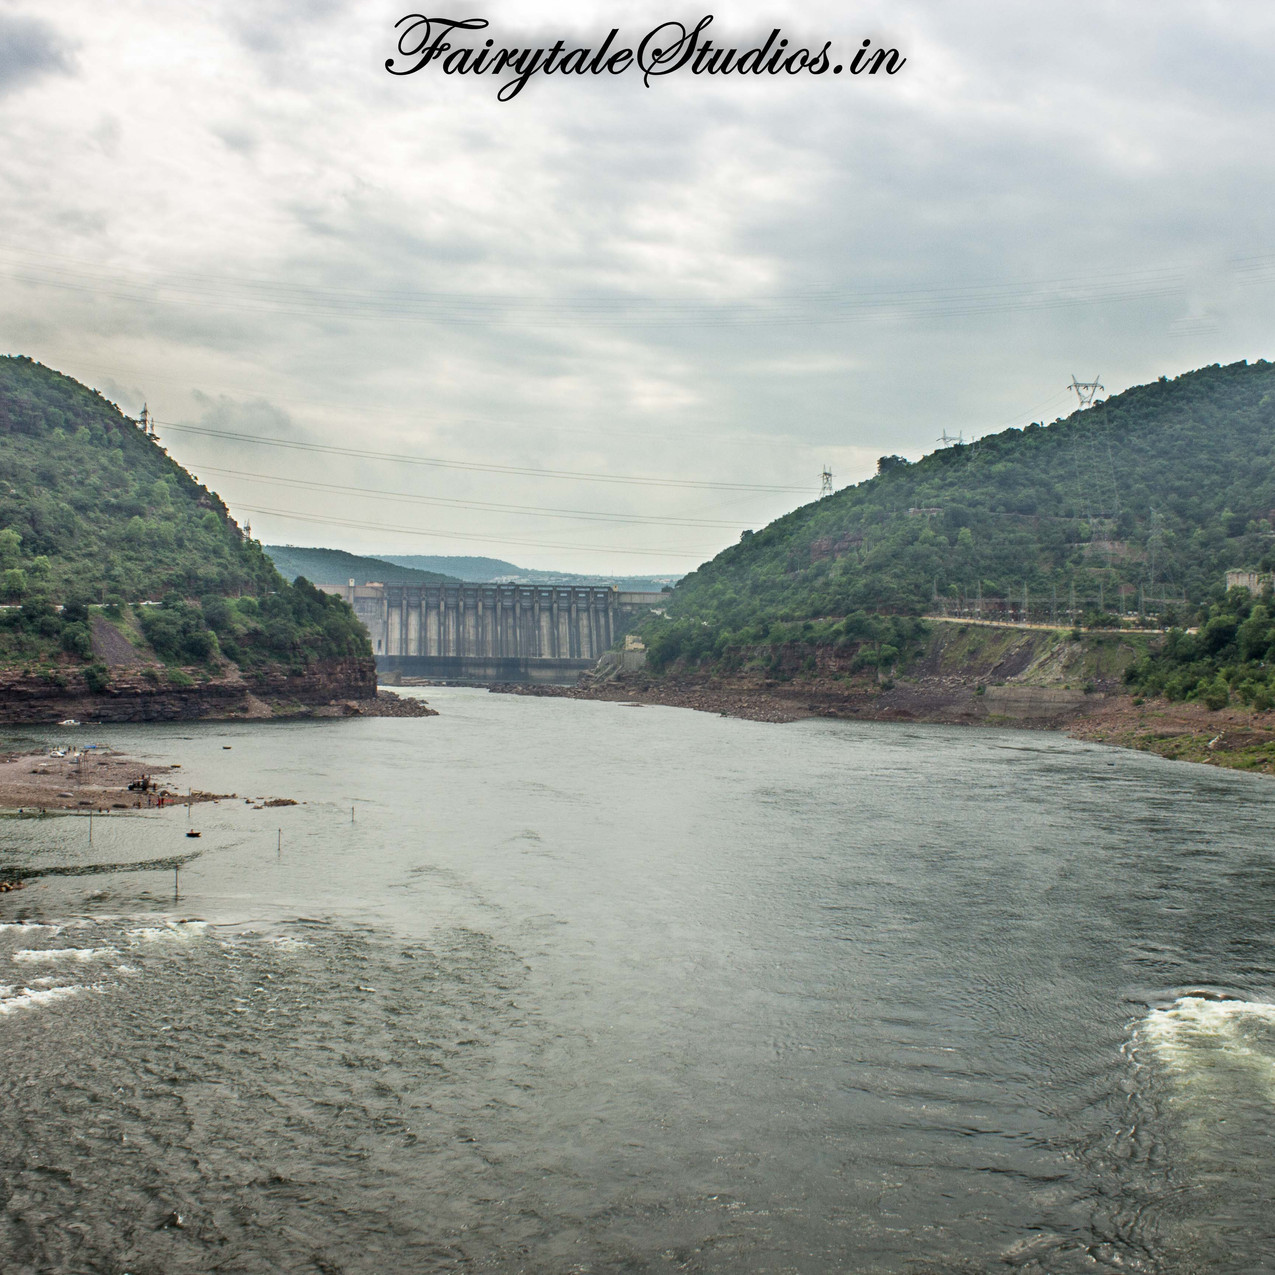 Srisailam_Fairytale Travels